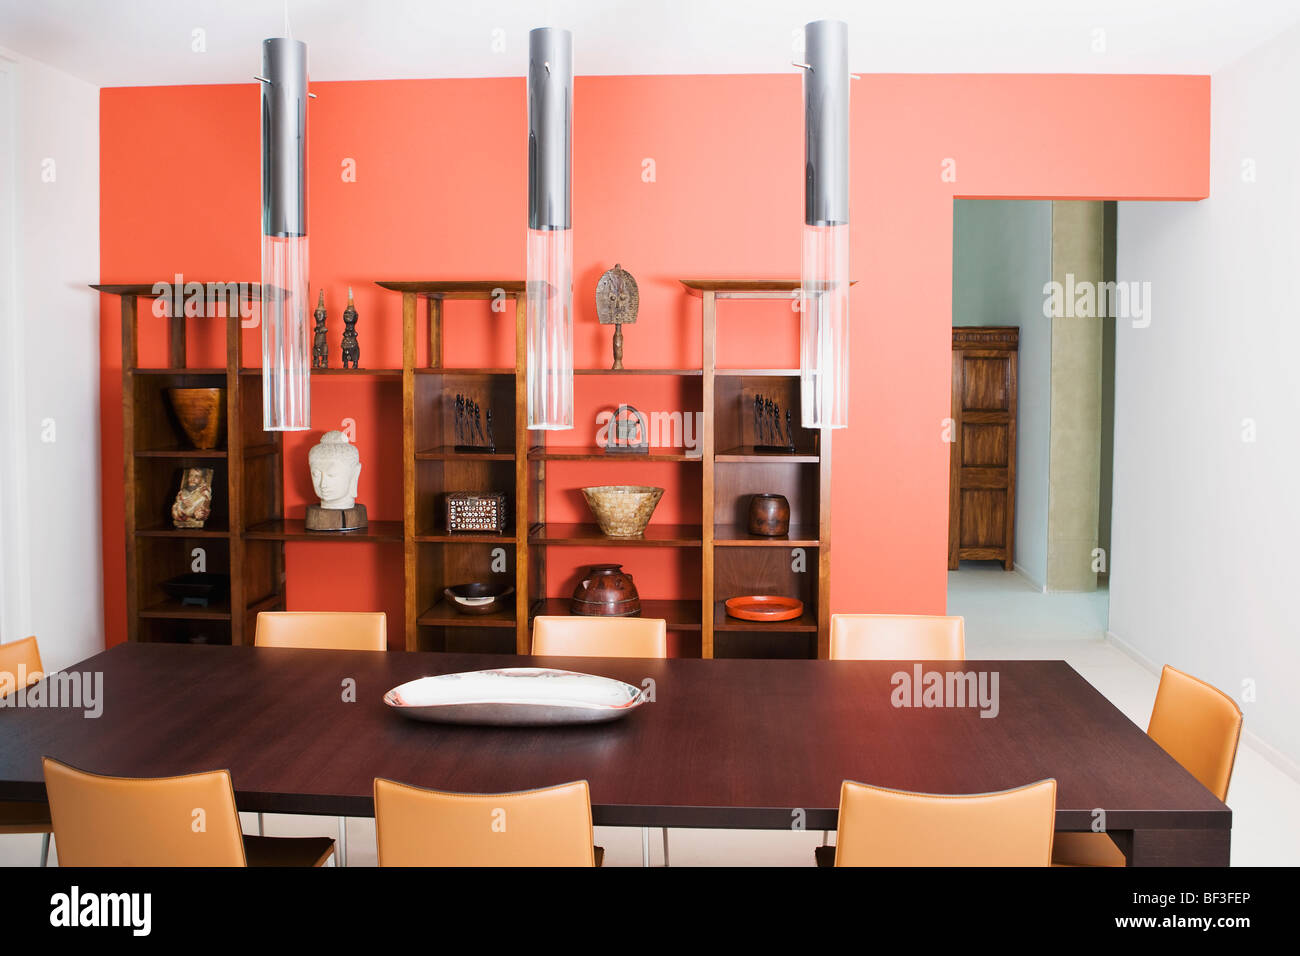 Interiors of a dining room - Stock Image